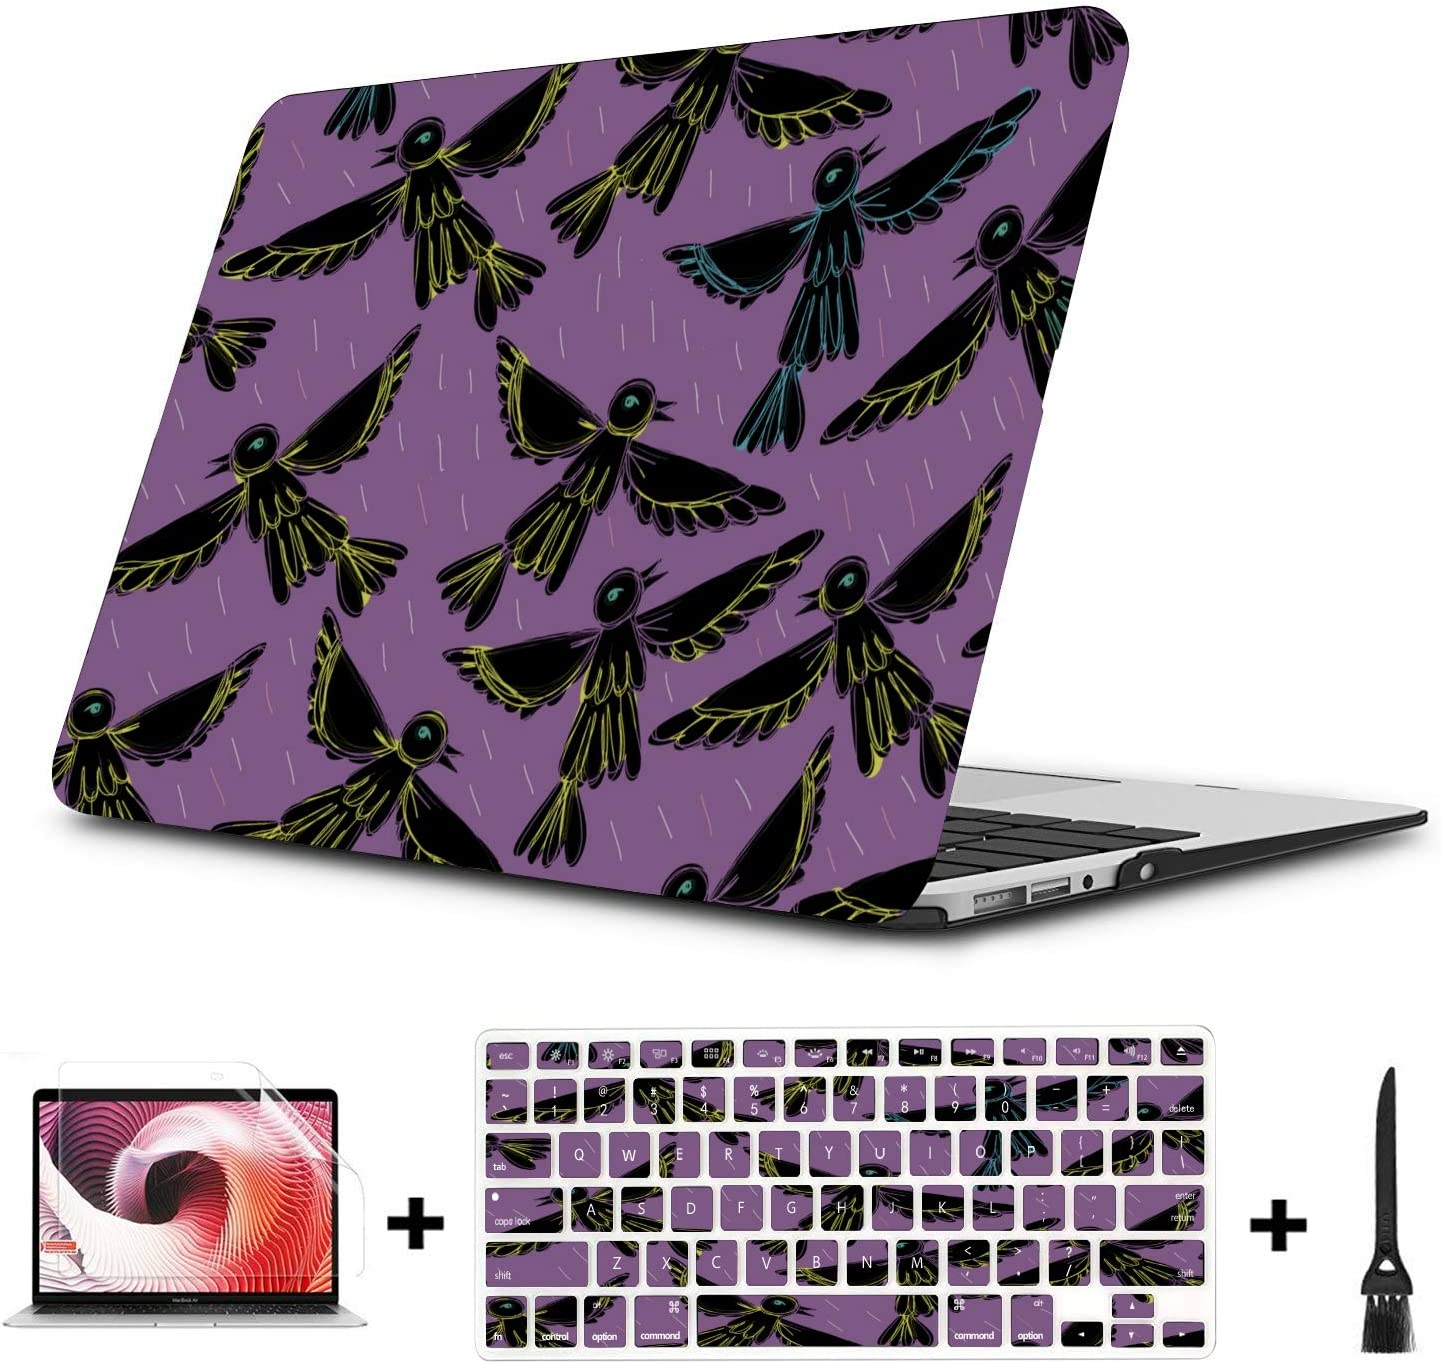 Mac Pro Case Spring Cute Hummingbirds Flowers Plastic Hard Shell Compatible Mac Air 11 Pro 13 15 Mac Pro Cover Protection for MacBook 2016-2019 Version